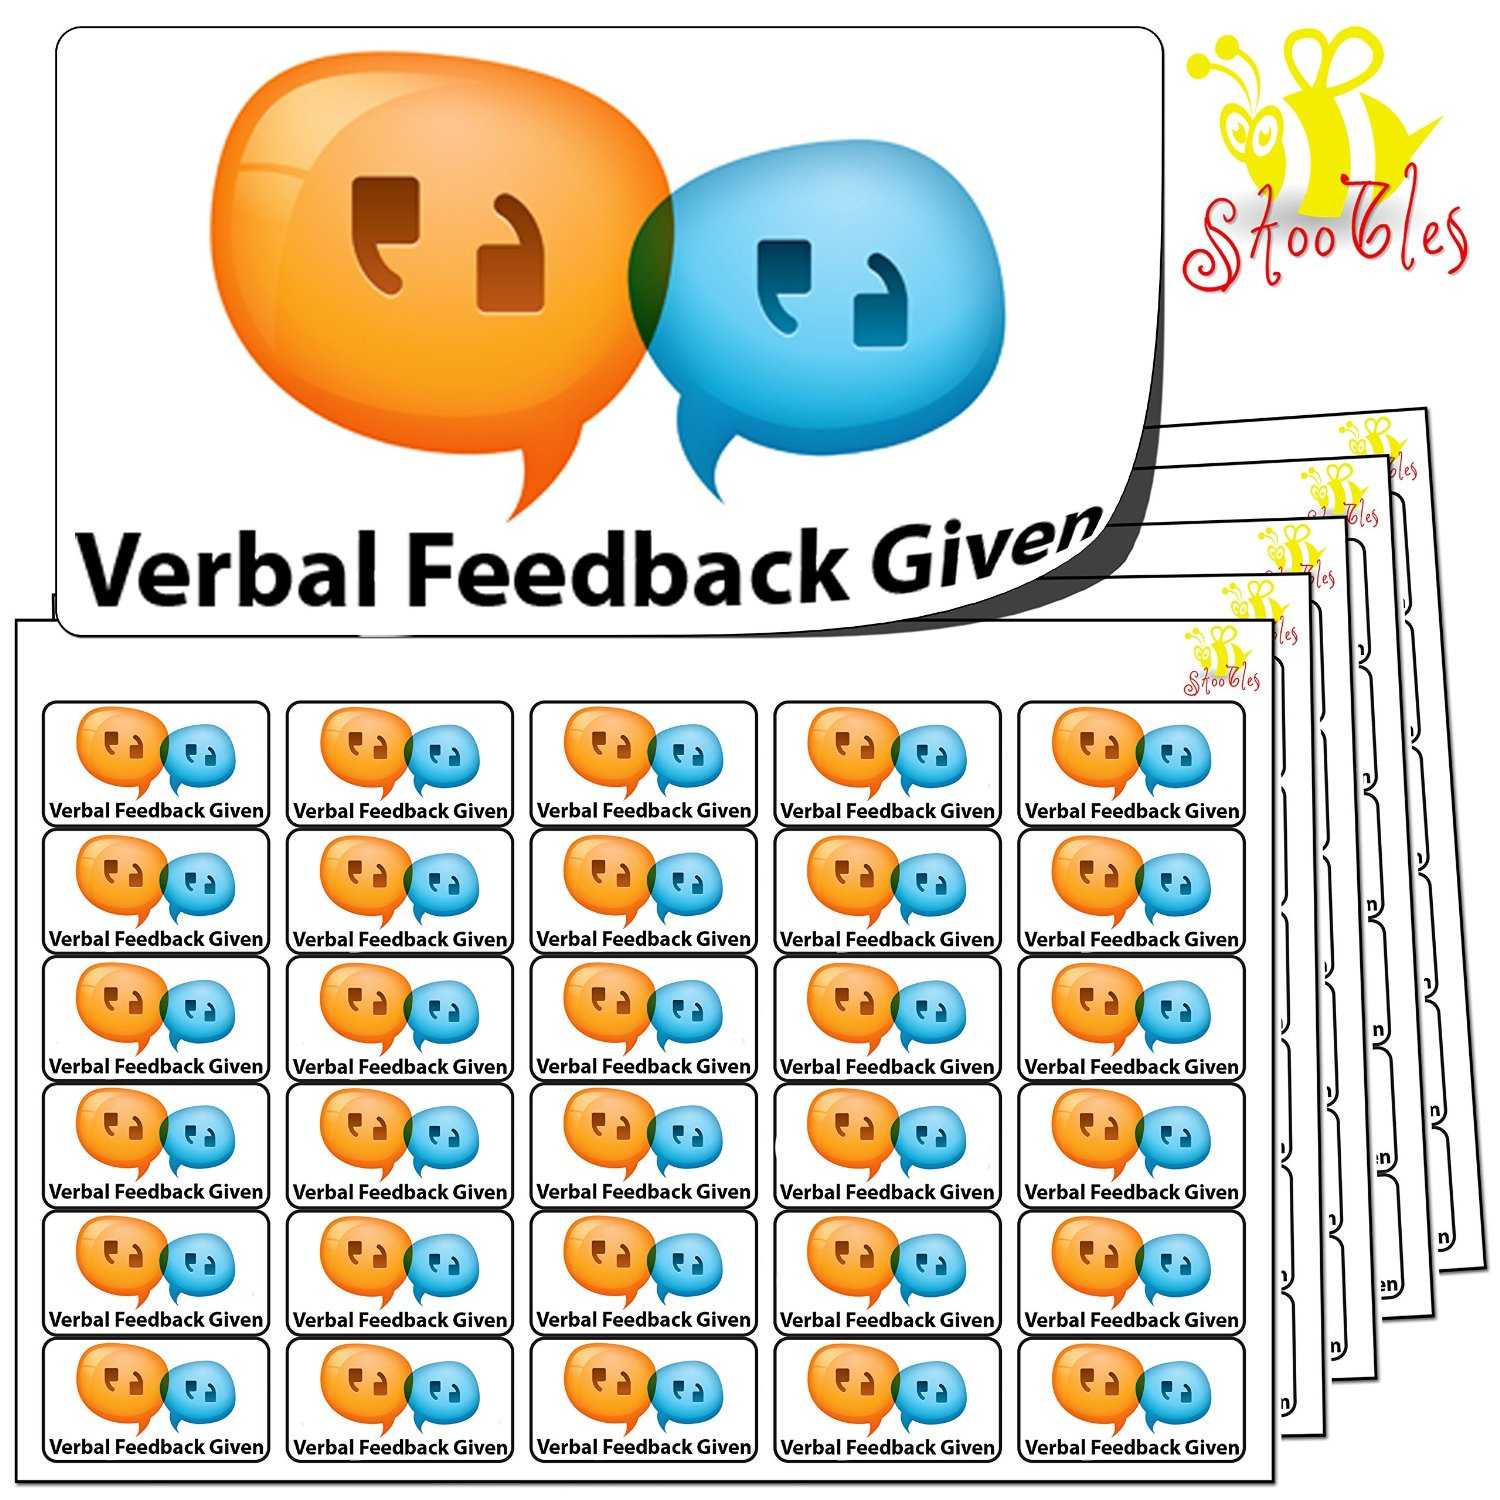 480x Verbal Feedback Given Stickers (38 x 21mm)